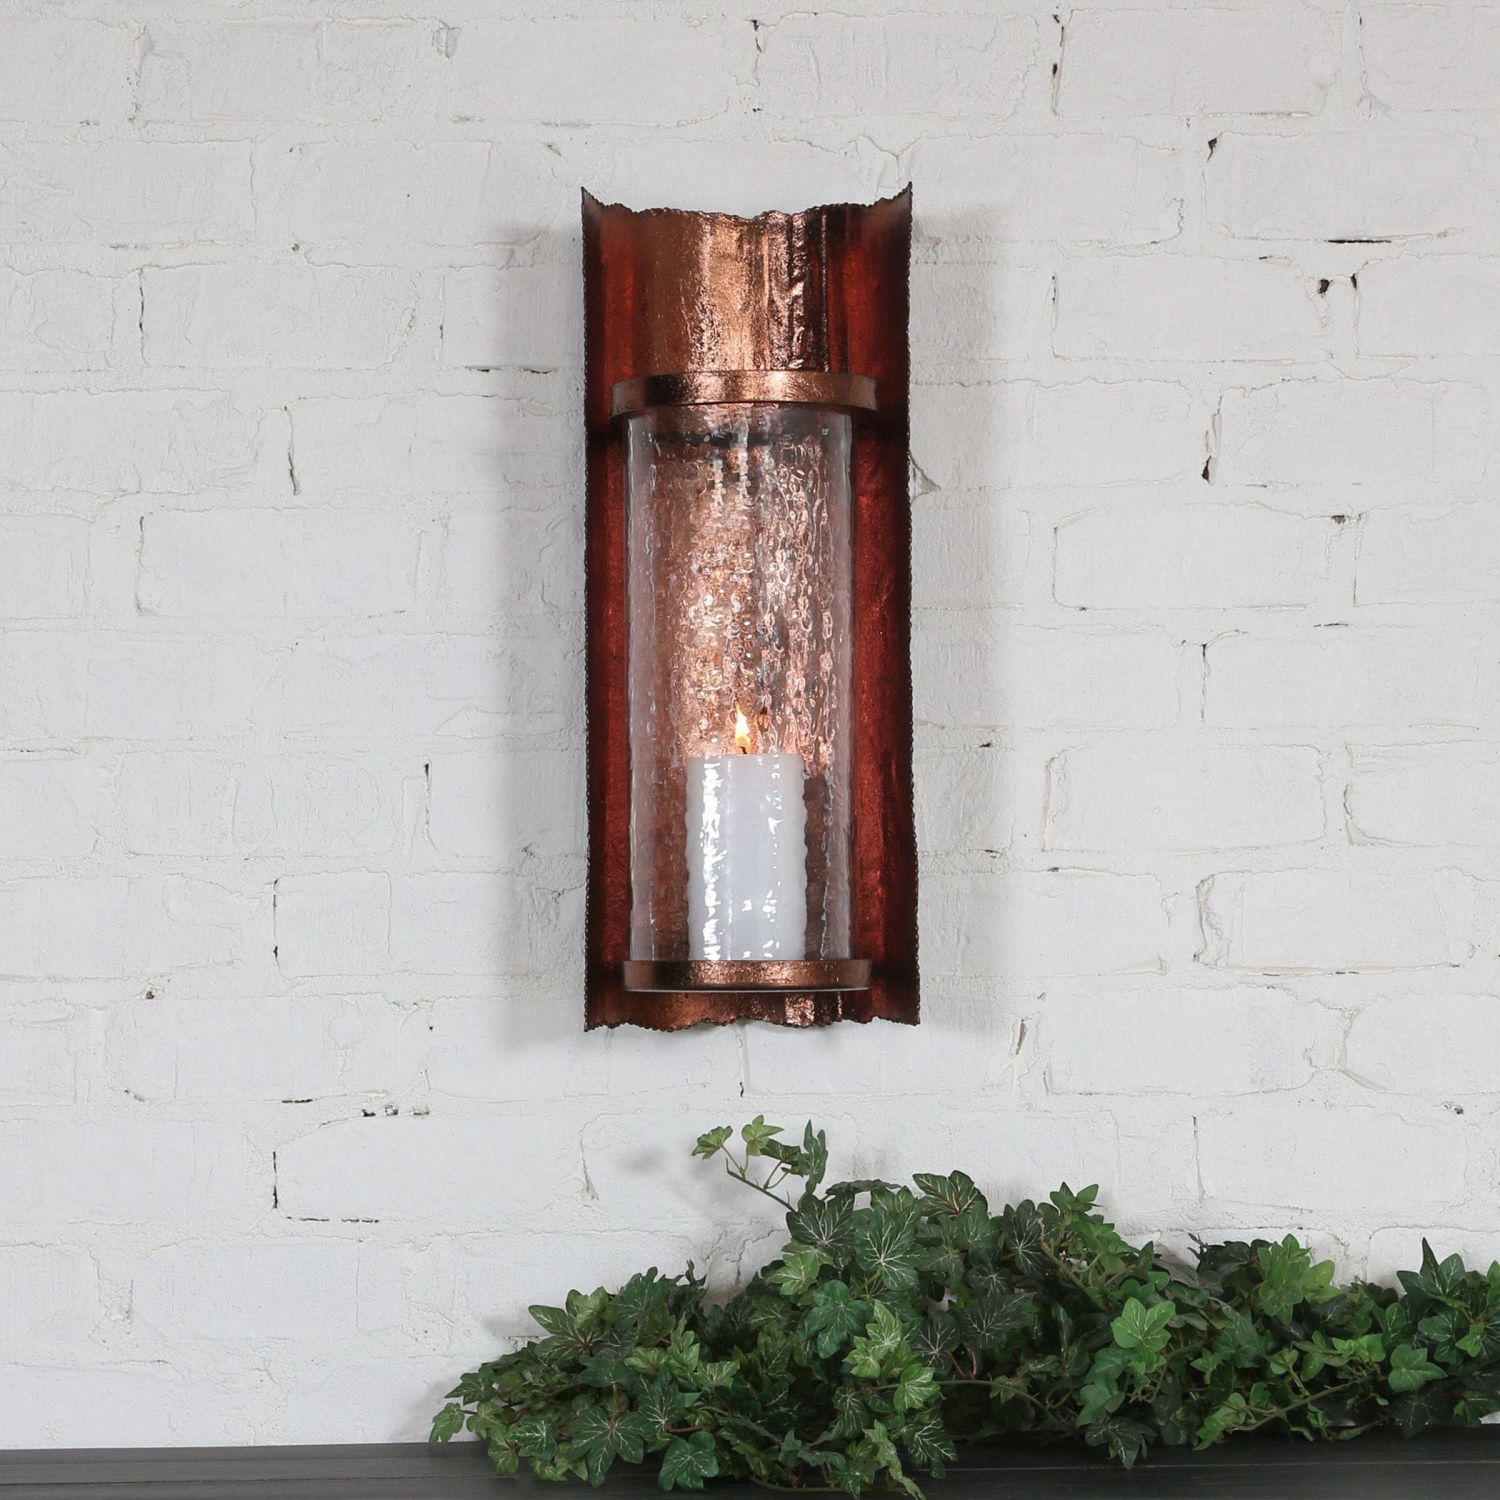 Details About Uttermost Antique Copper Sconce Hammered Glass Shade Candle Holder Wall Decor